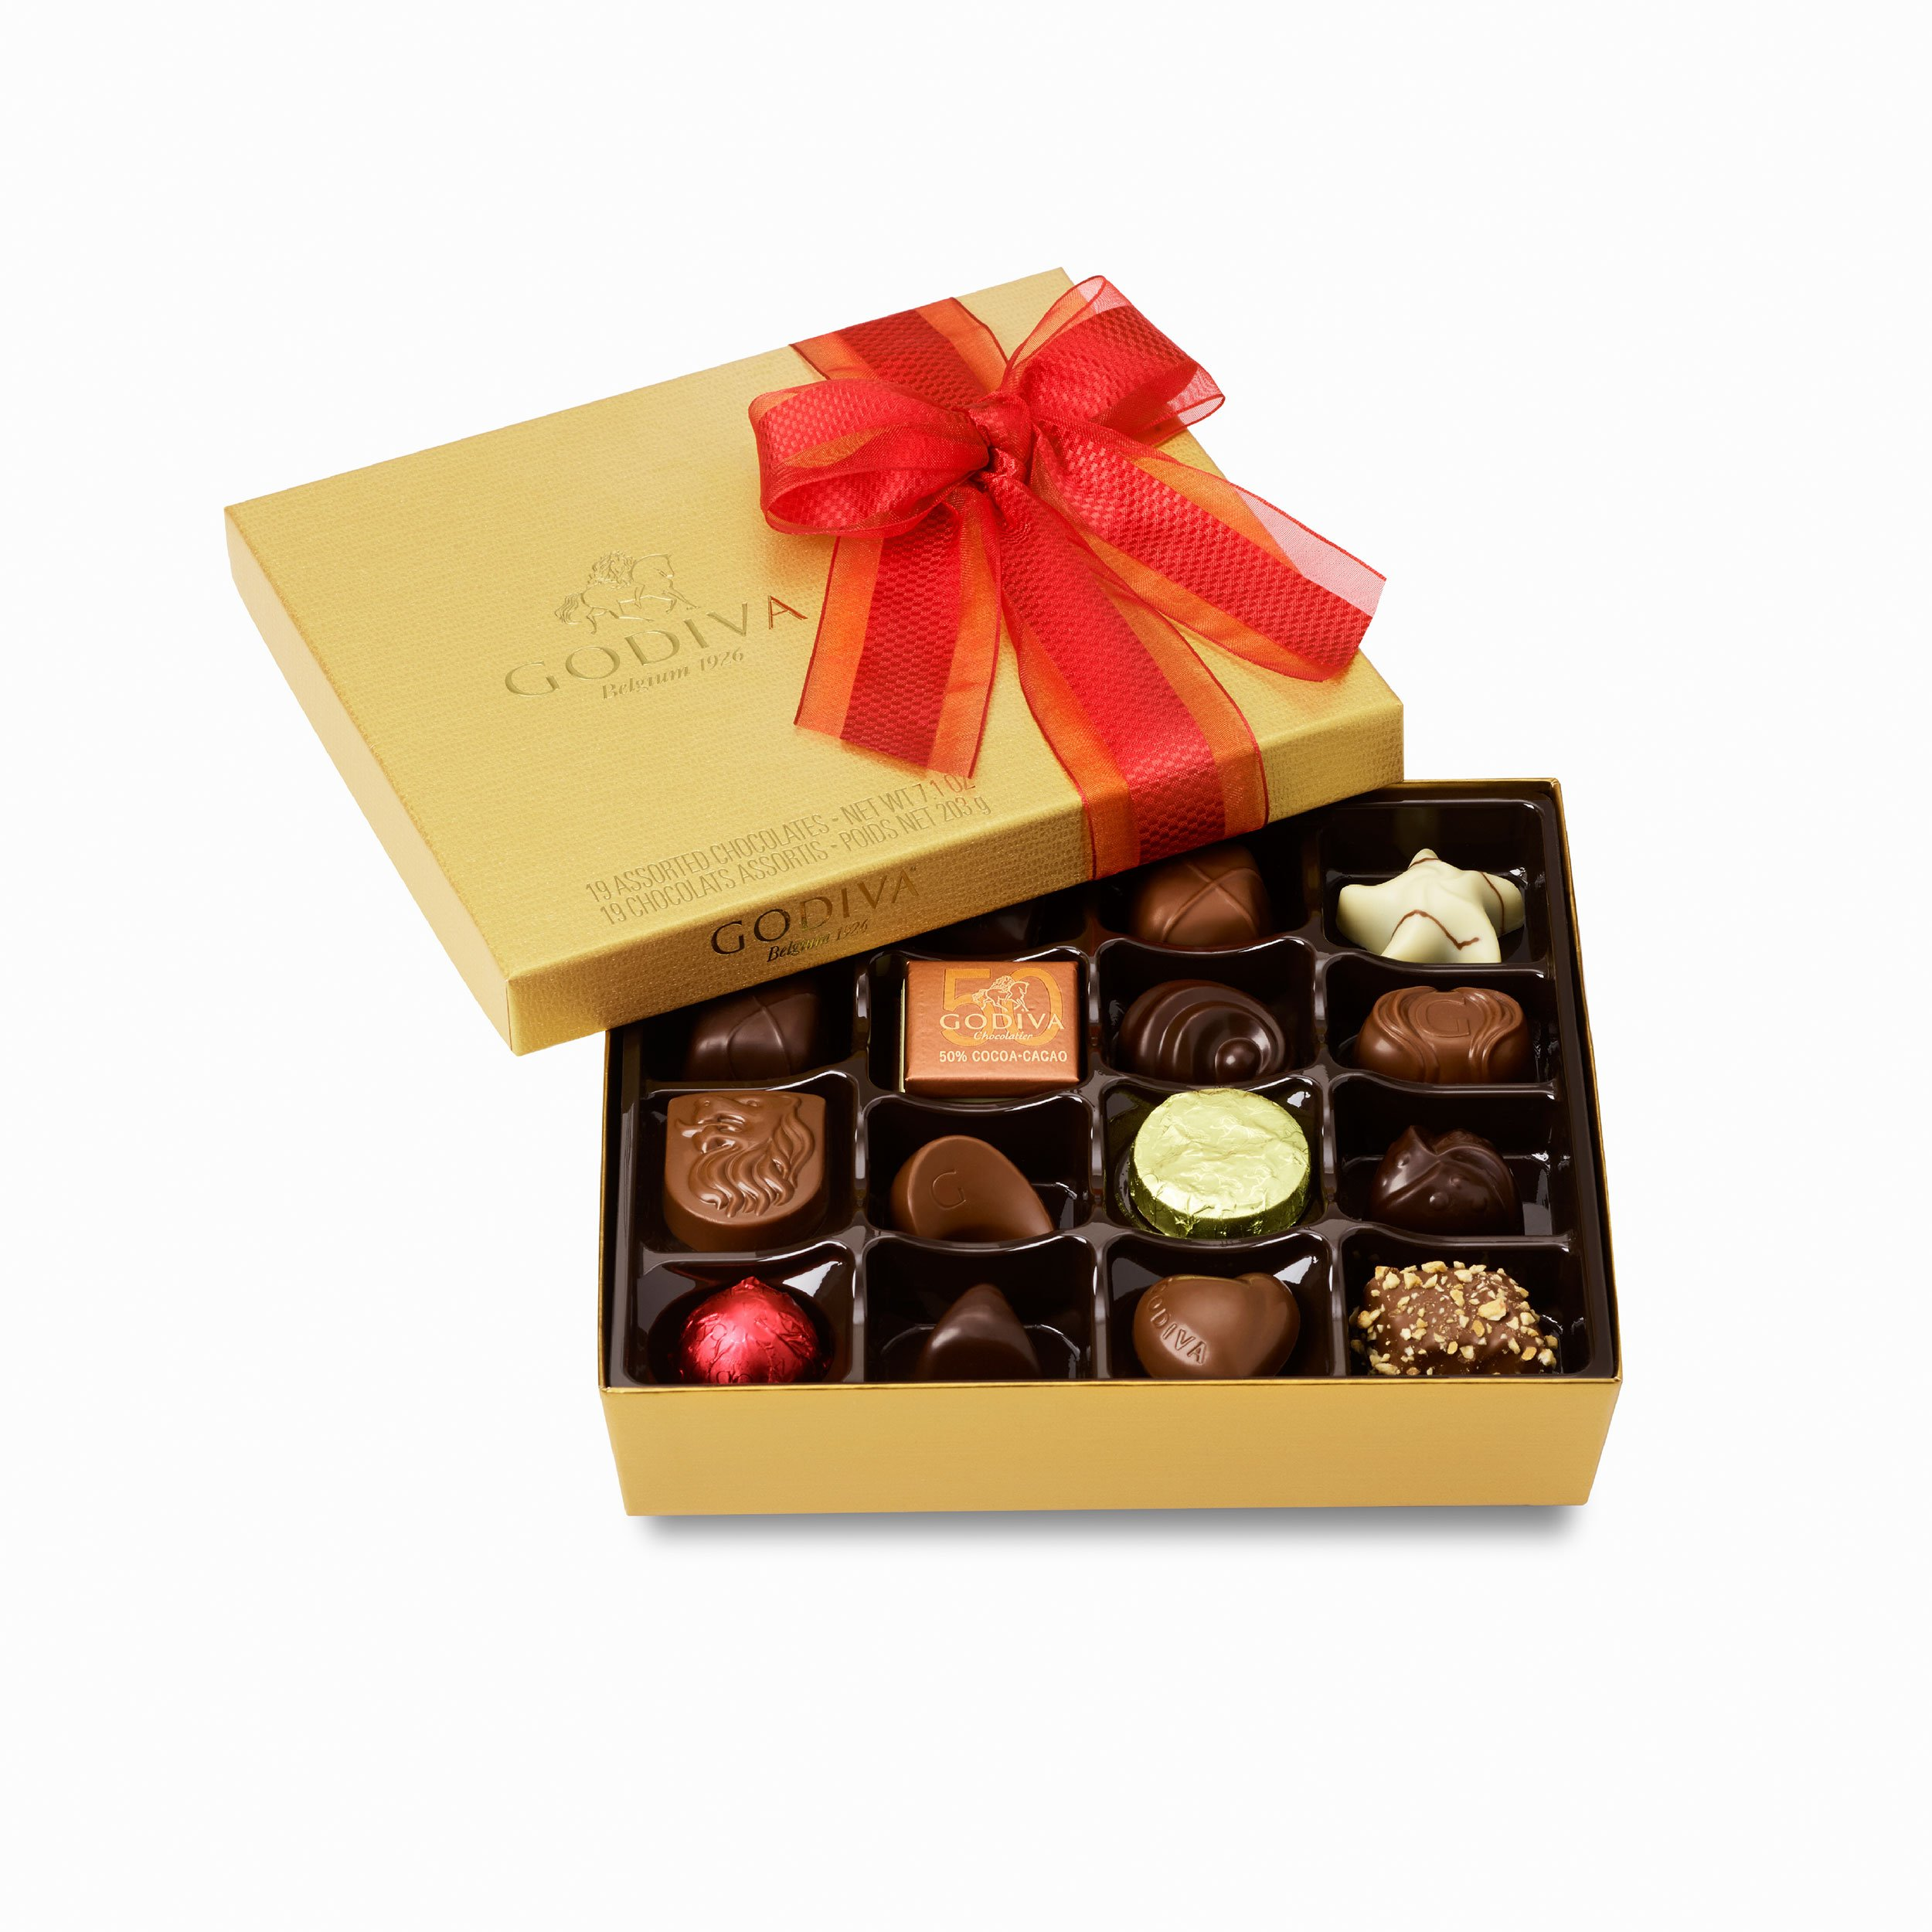 Godiva Chocolatier Gold Ballotin Assorted Gourmet Chocolates 19 Piece Gift Box, Great for Gifting by GODIVA Chocolatier